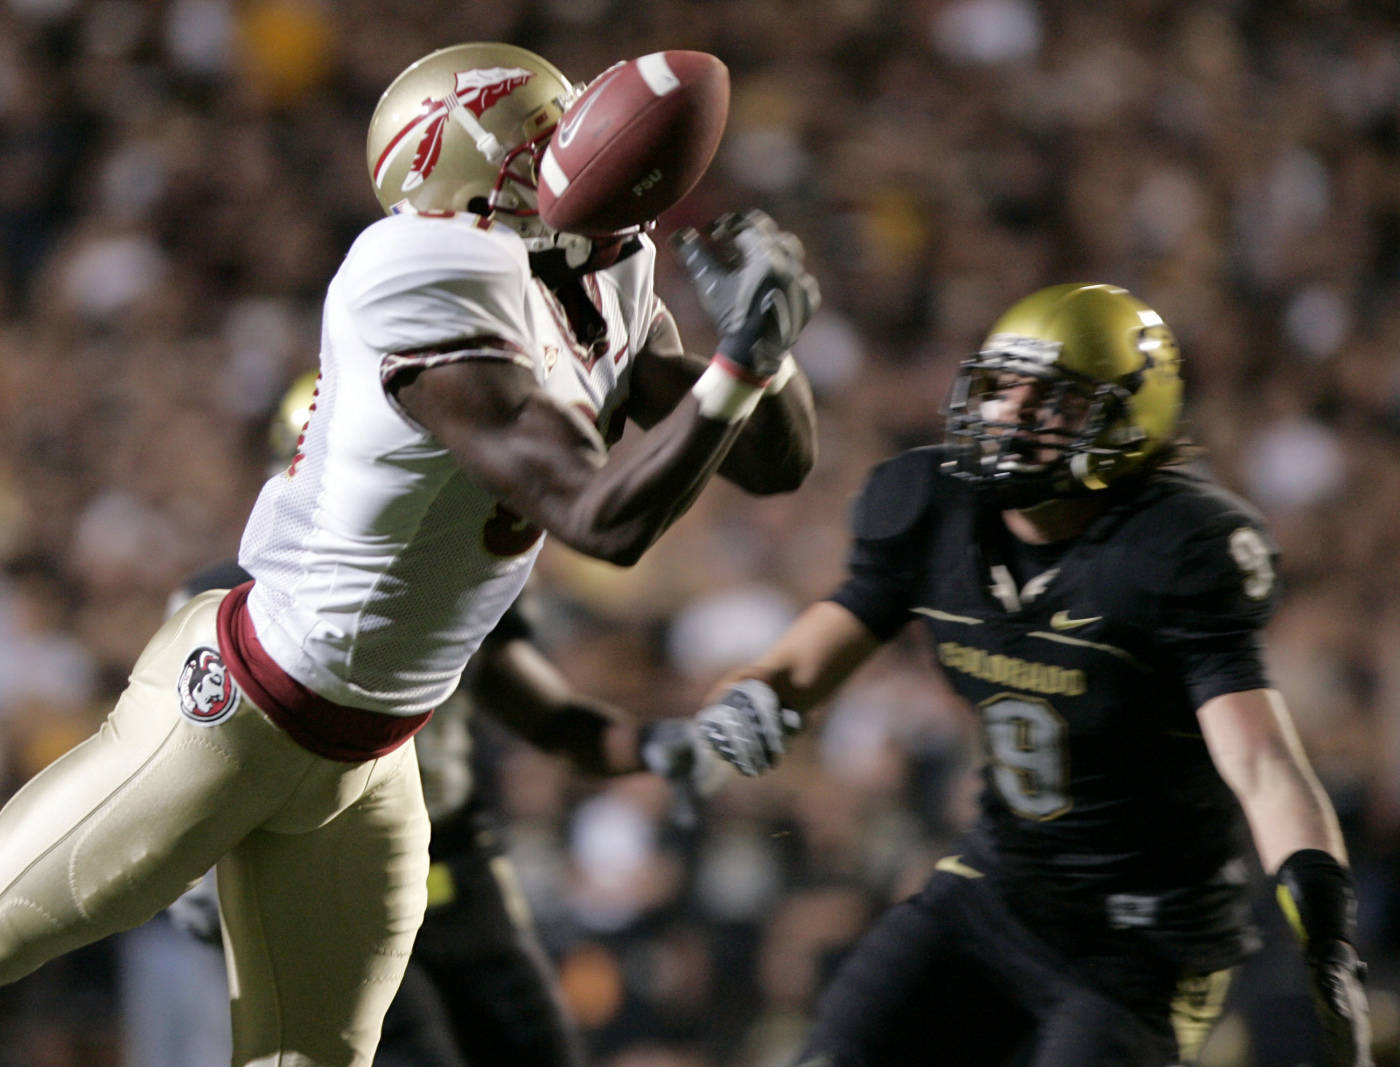 Florida State wide receiver De'Cody Fagg, front, drops a pass as Colorado safety Daniel Dykes looks on in the first quarter. (AP Photo/Jack Dempsey)